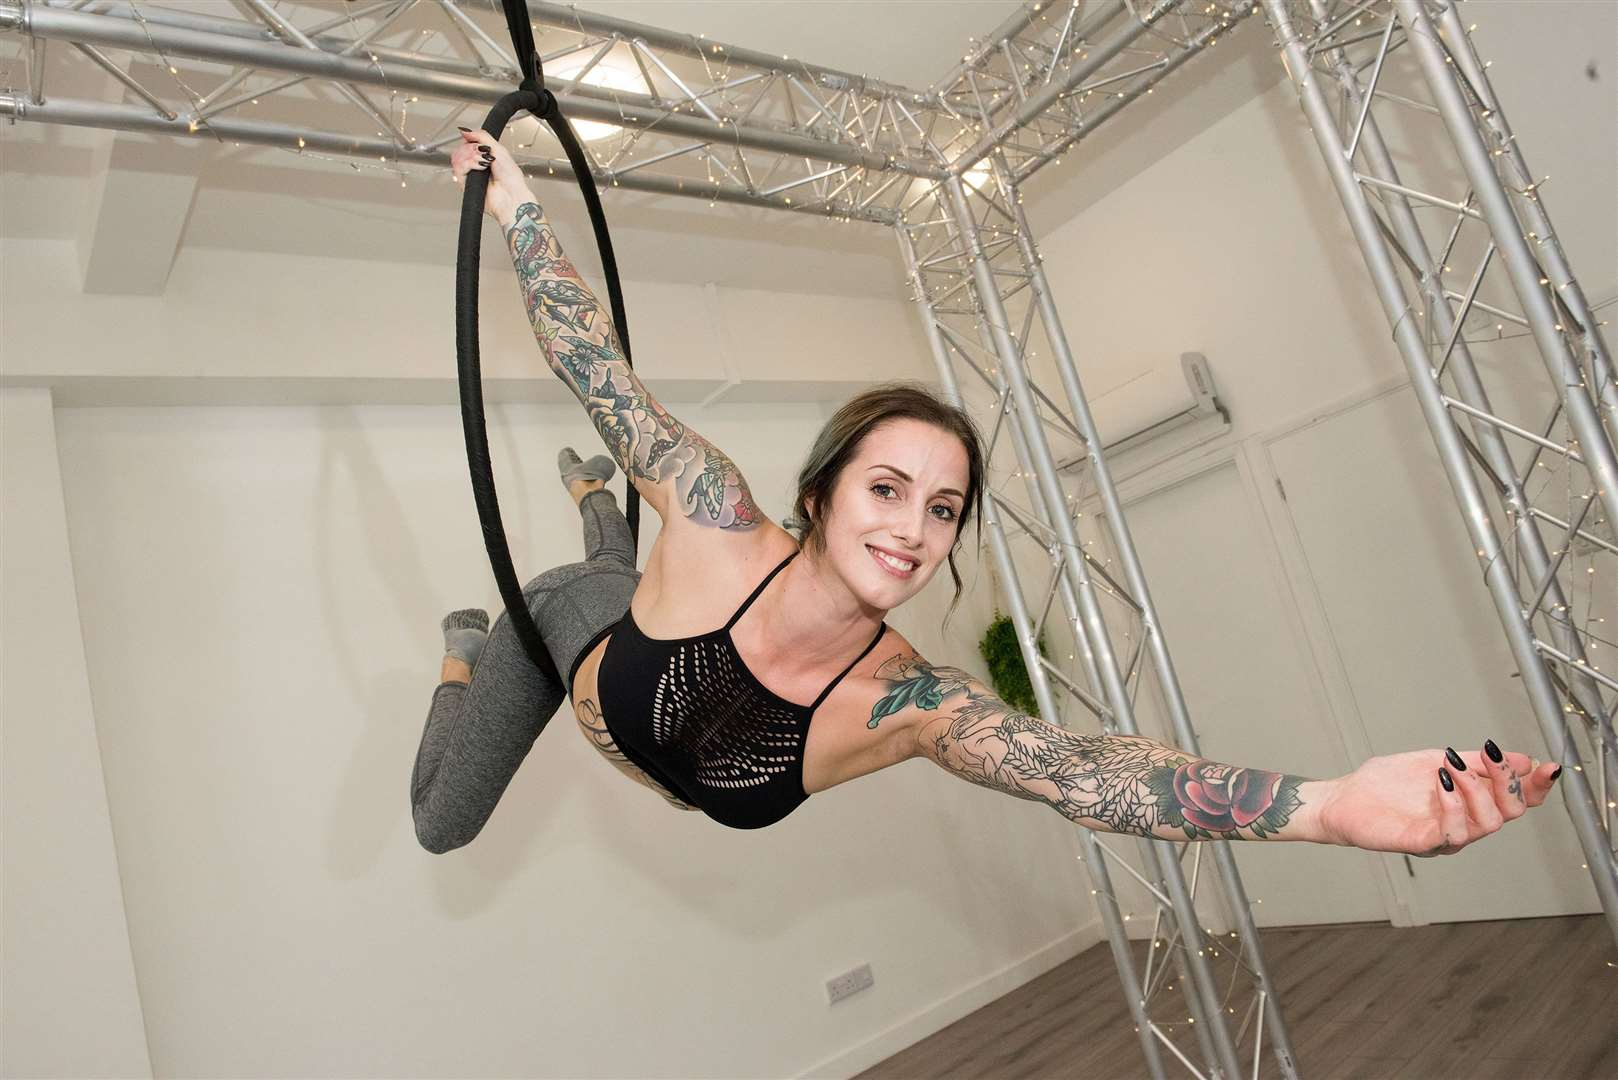 Emily Stockings shows how an aerial hoop is used. Picture by Mark Westley.